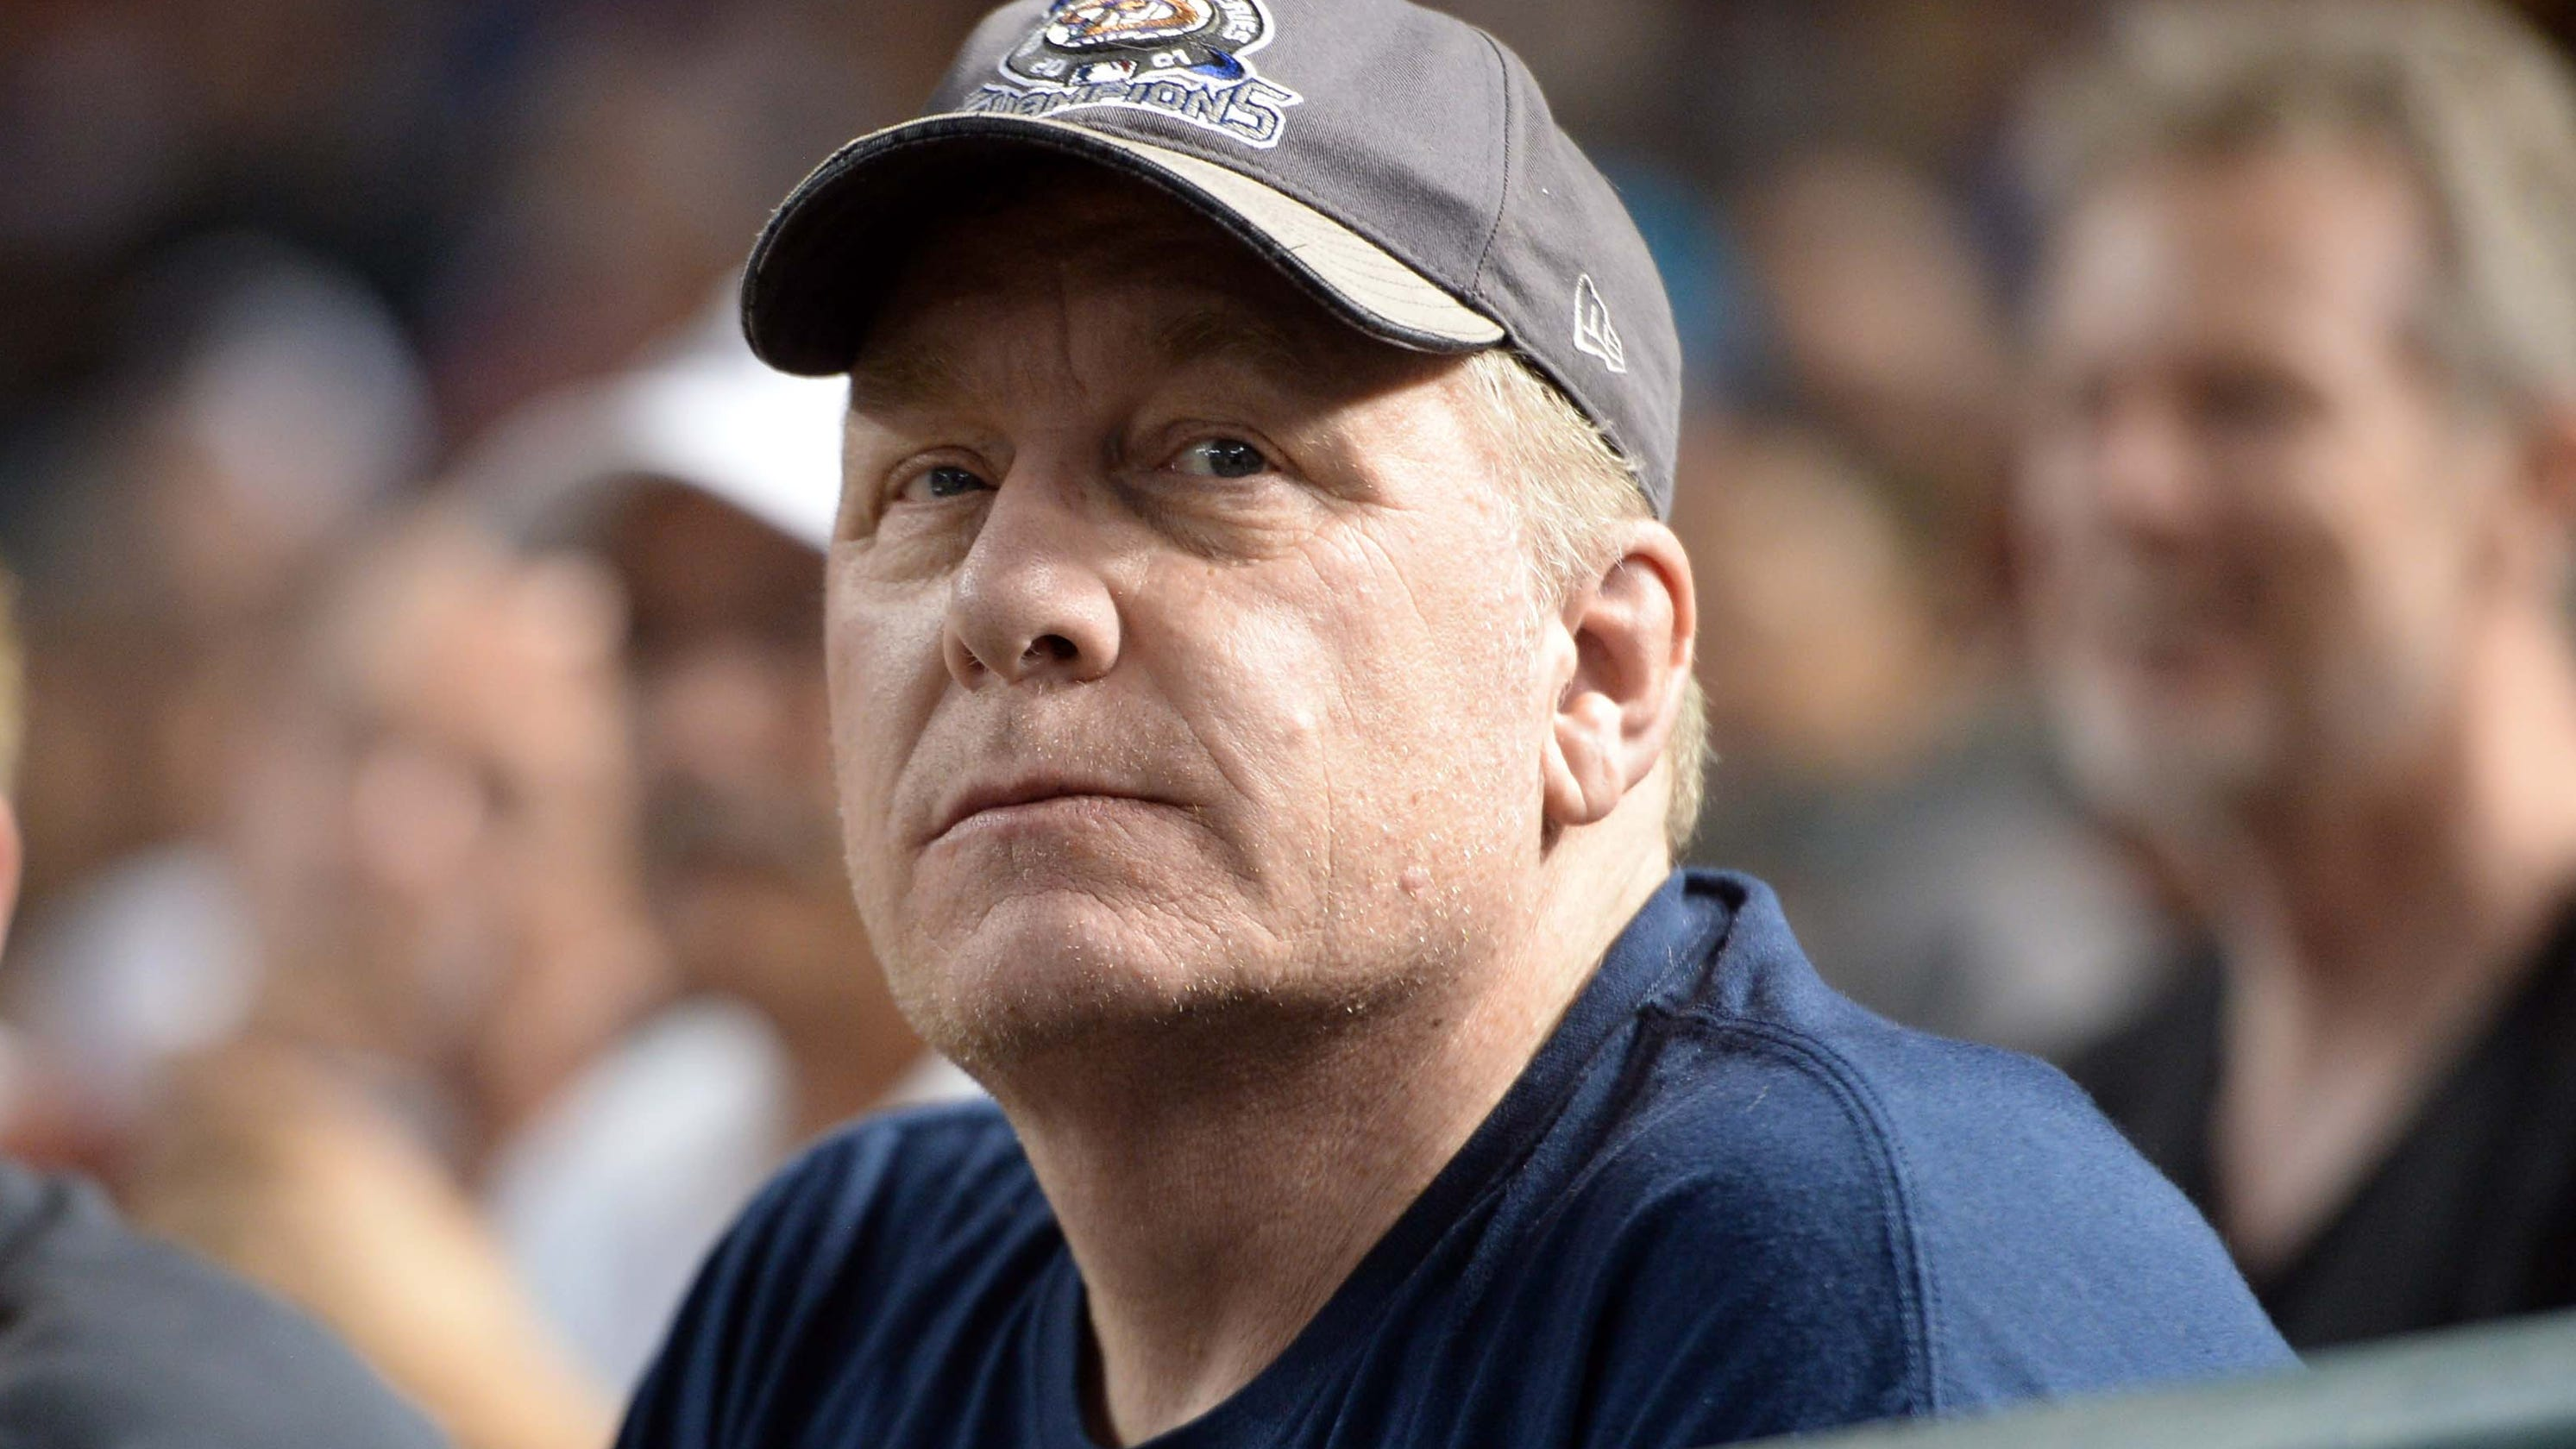 Curt Schilling compares Bubba Wallace to Jussie Smollett: 'It was all a lie'